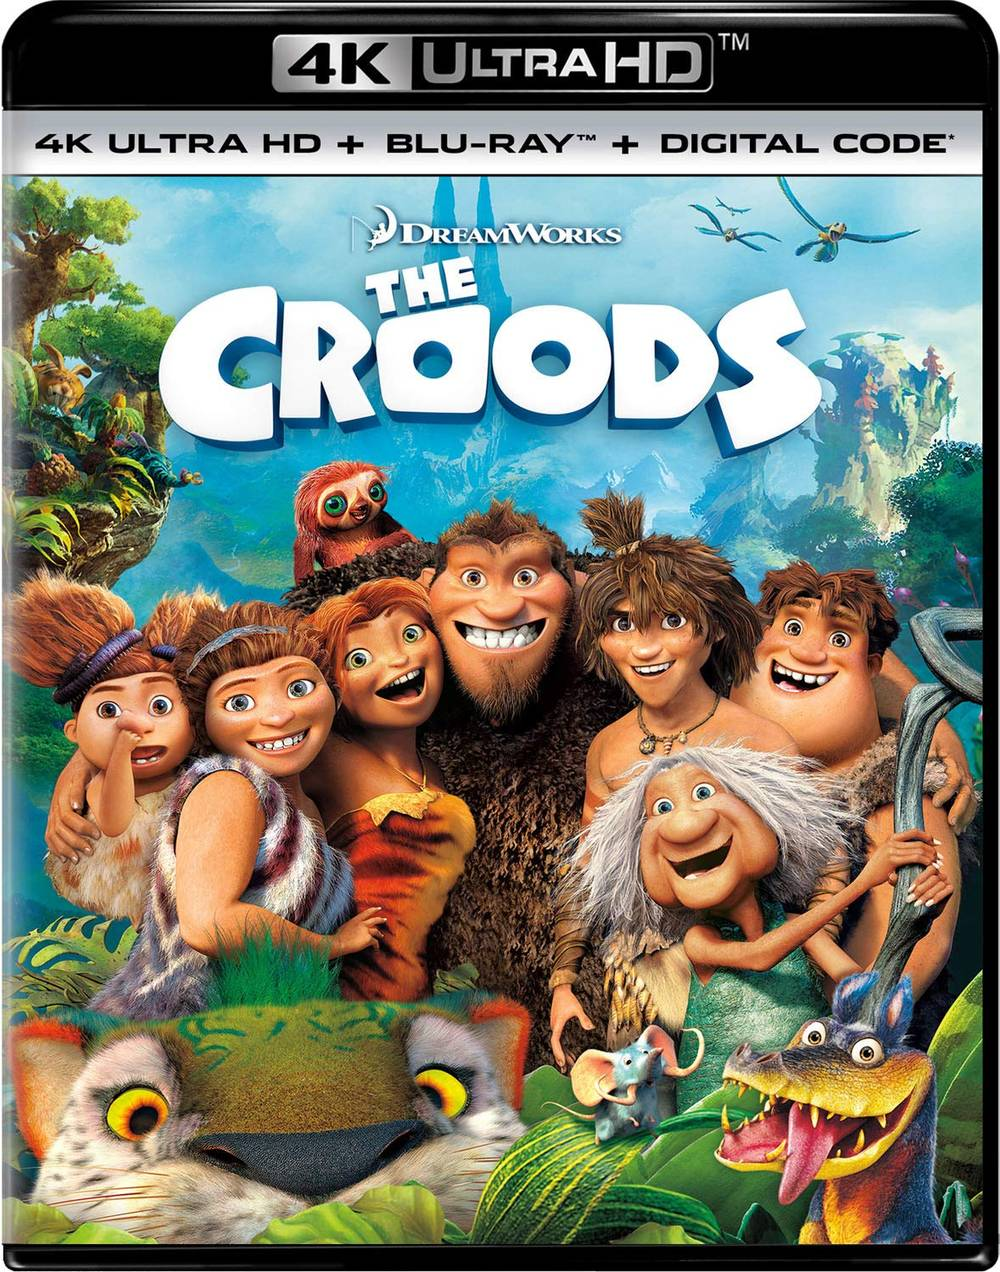 The Croods [Movie] - The Croods [4K]